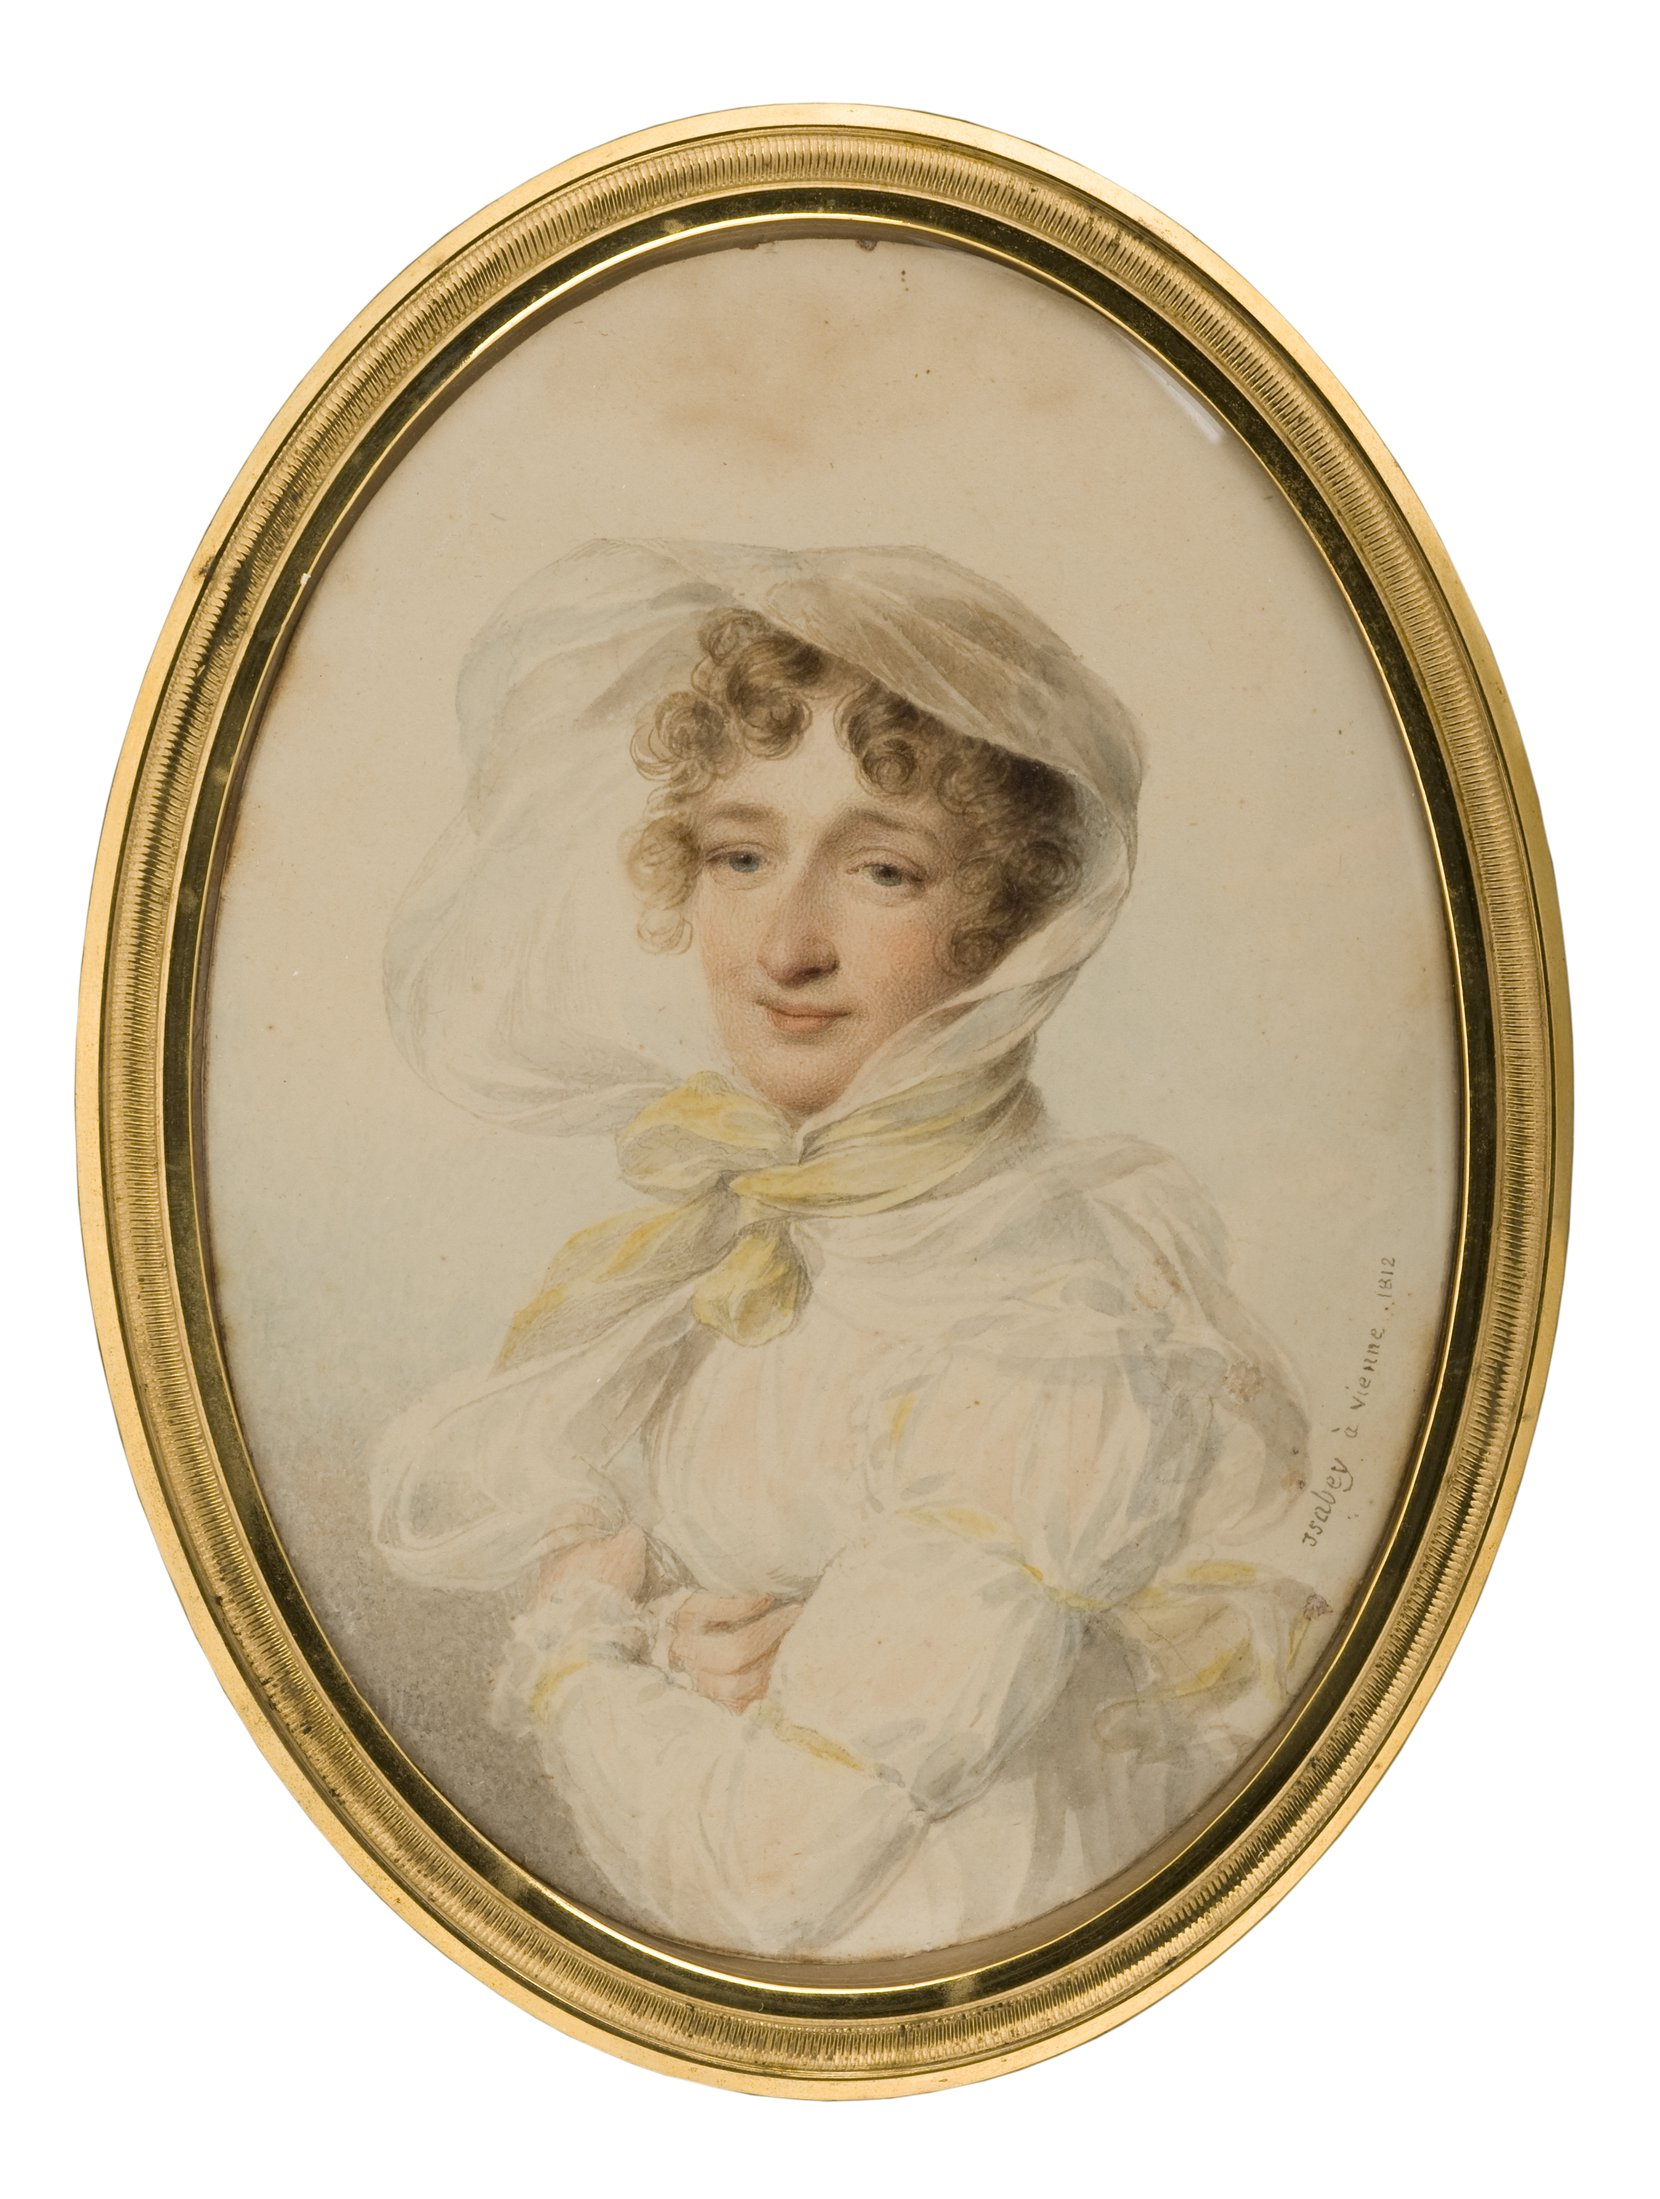 lady in white dress with yellow ribbons -- jean-baptiste isabey art painting